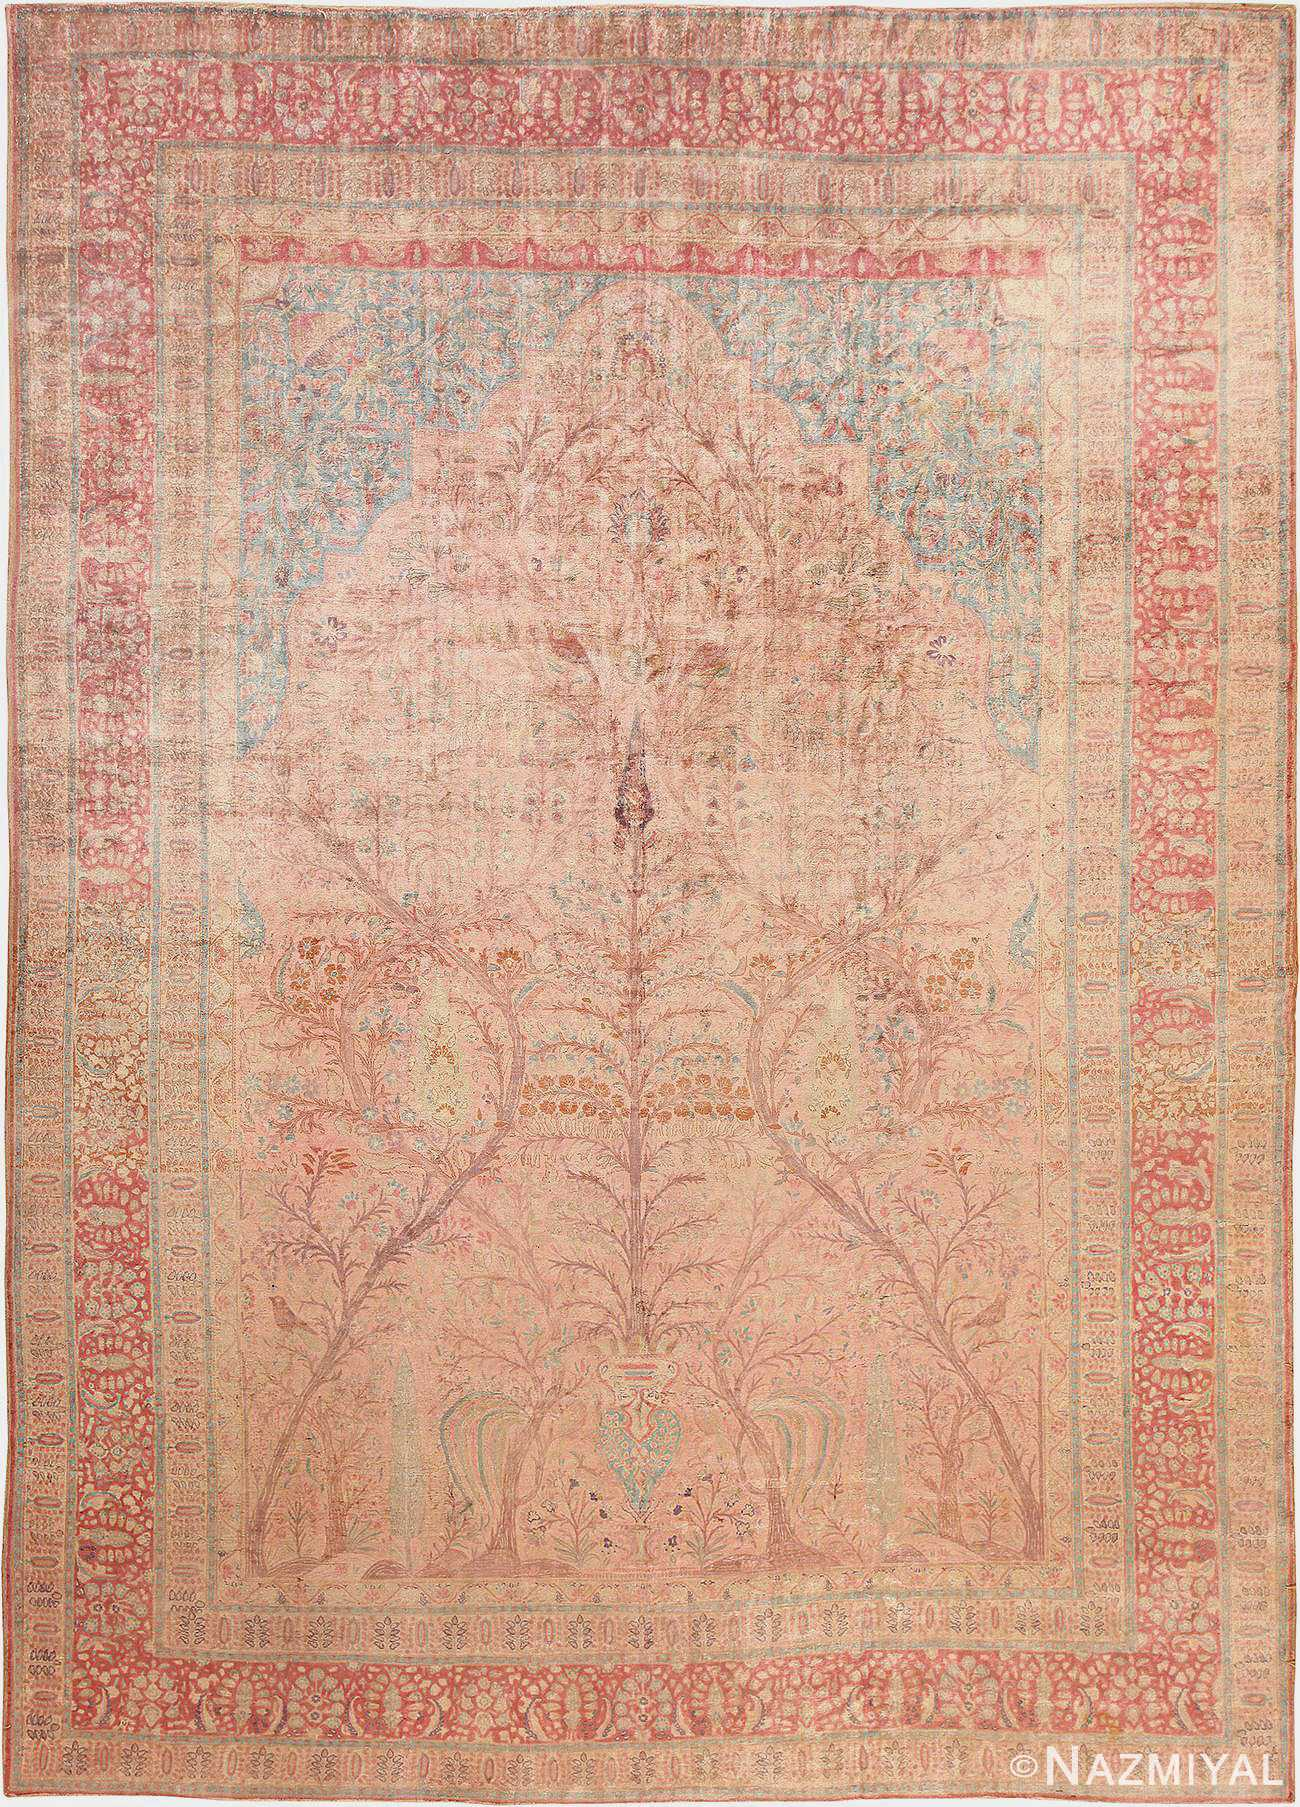 Antique Silk Tree Of Life Design Persian Kashan Rug 48547 from Nazmiyal Antique Rugs in NYC